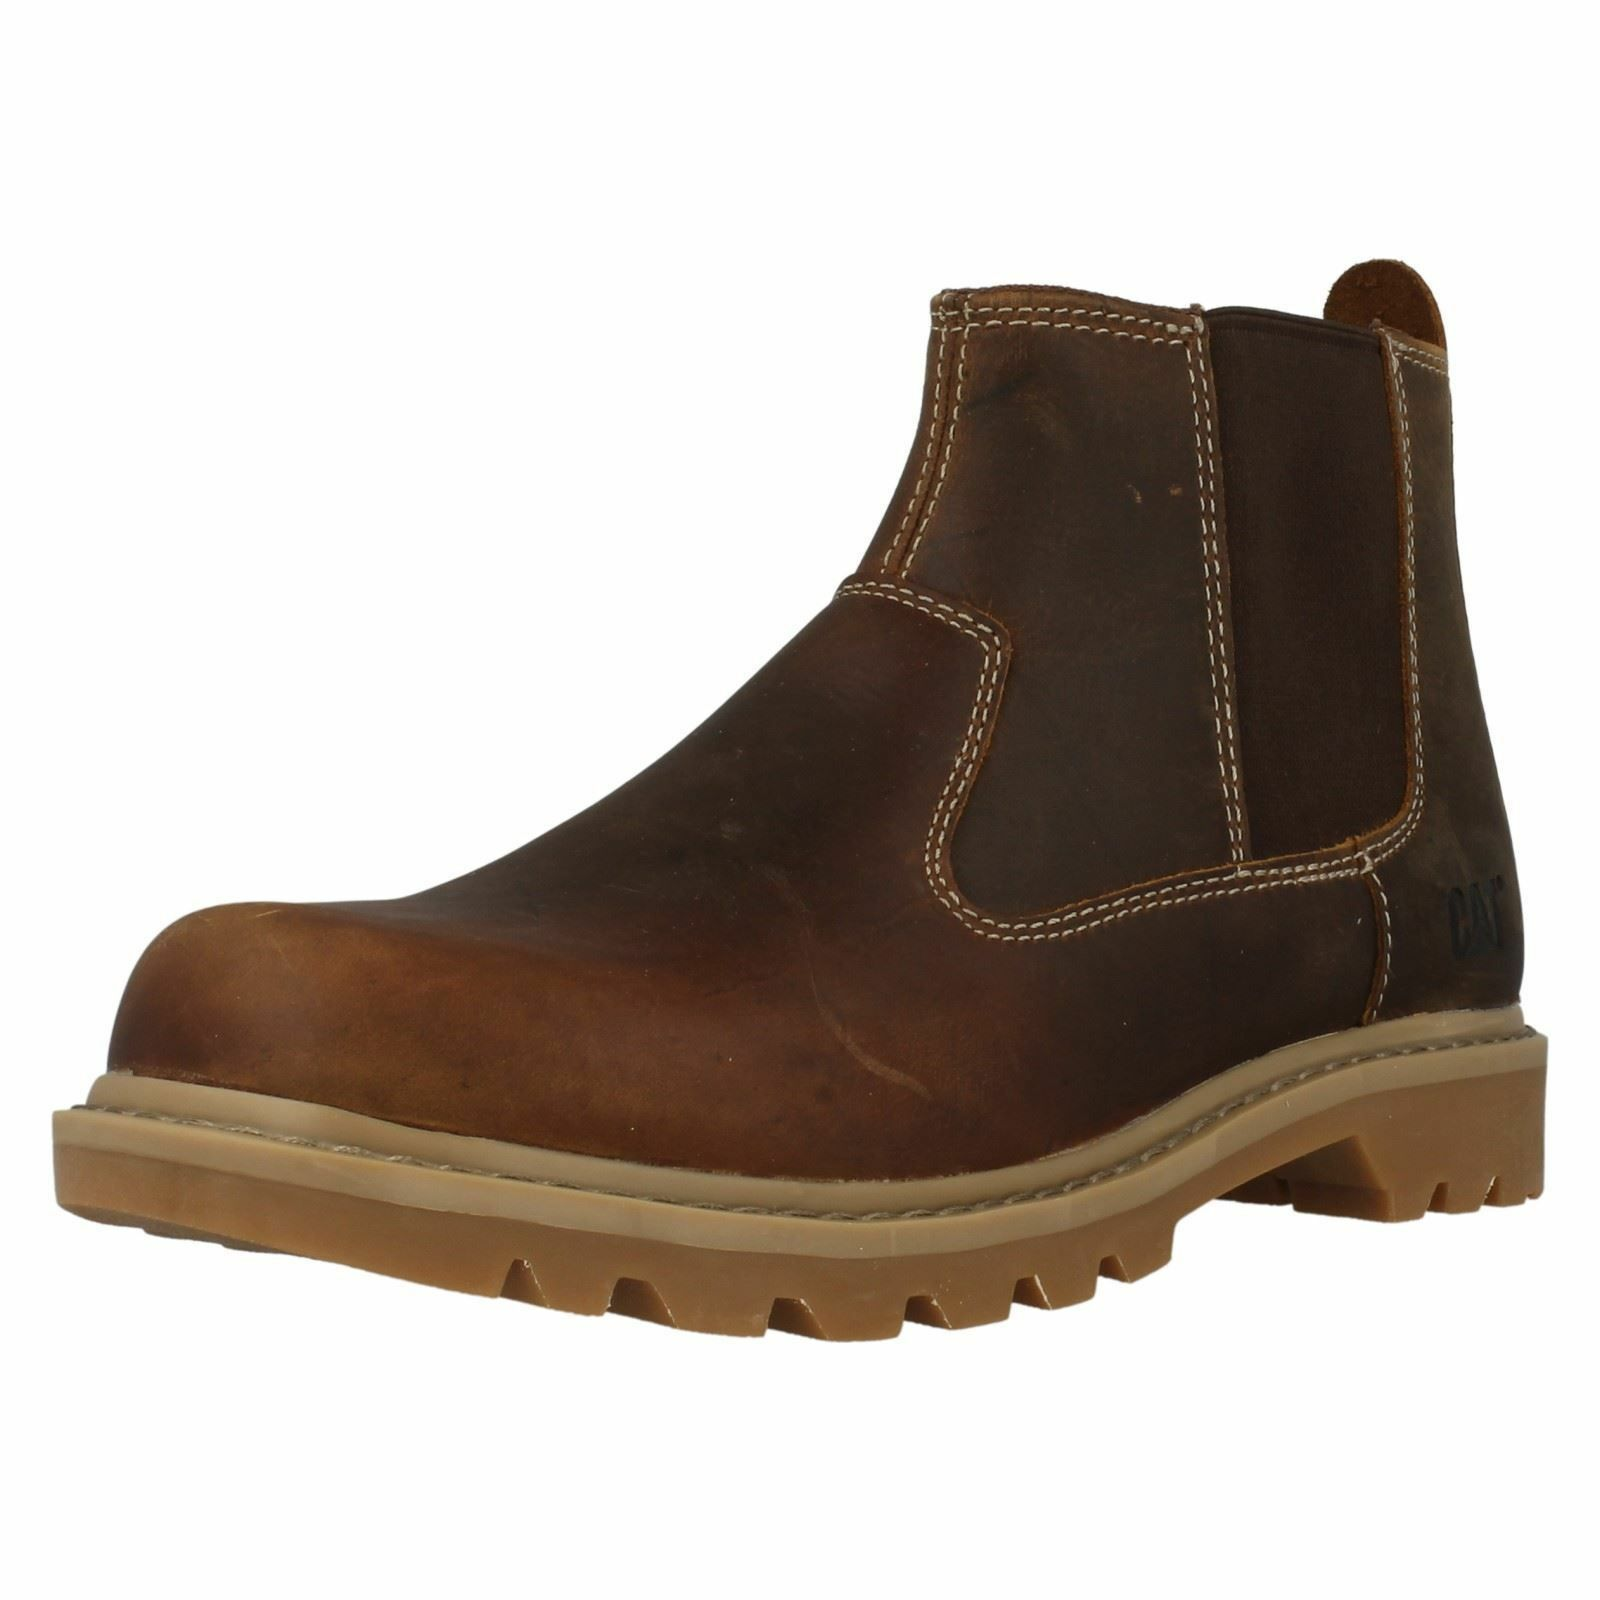 MENS CATERPILLAR DARK BEIGE LEATHER PULL ON ANKLE BOOT STYLE - DRYSDALE